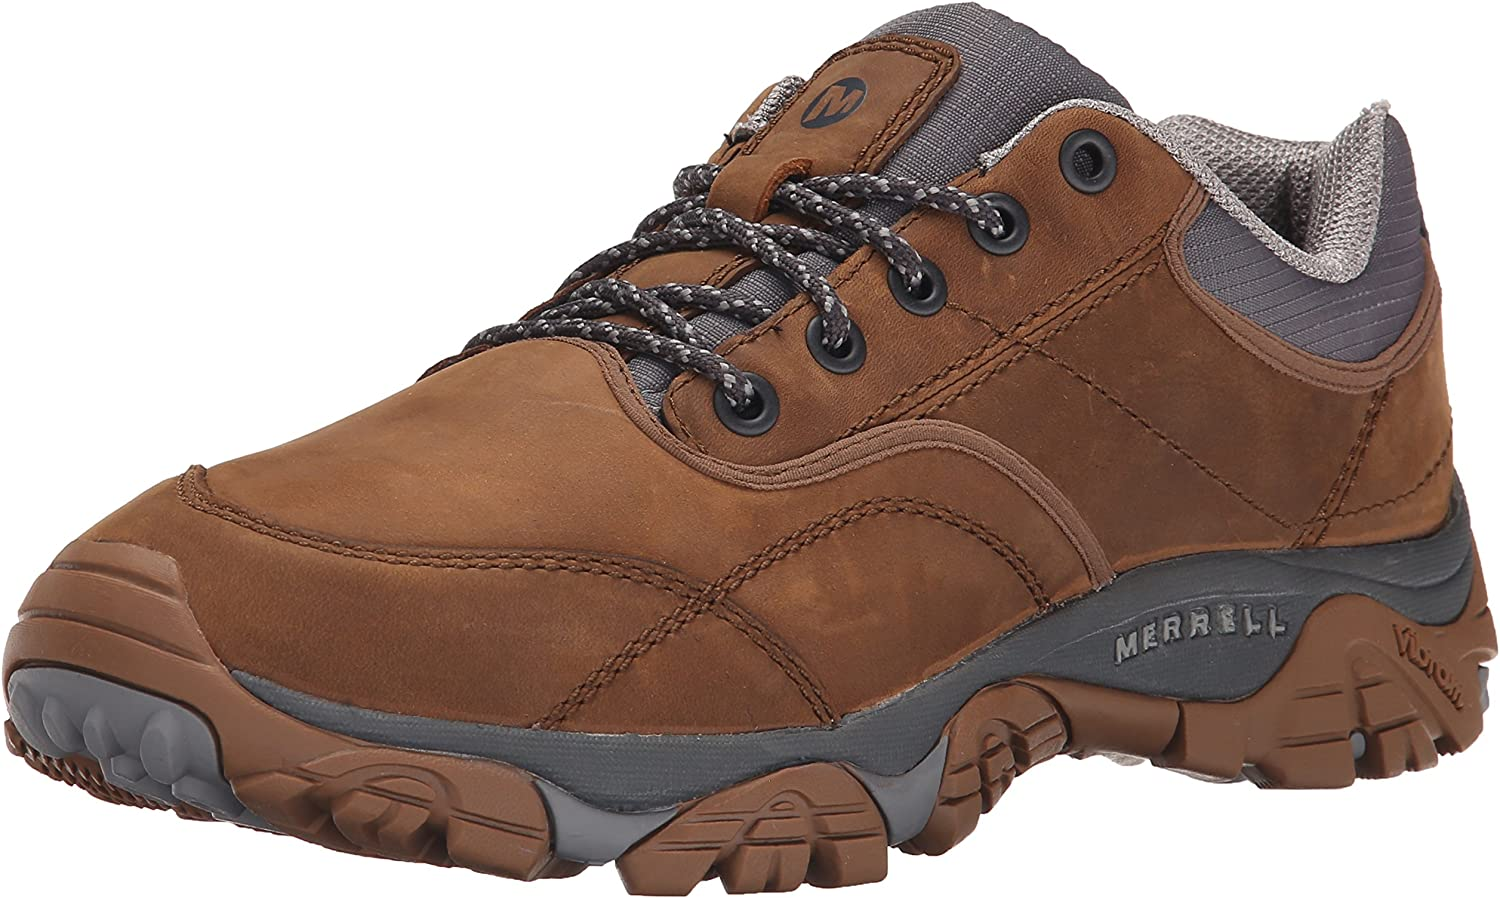 Merrell Men's's Moab Rover Low Rise Hiking shoes